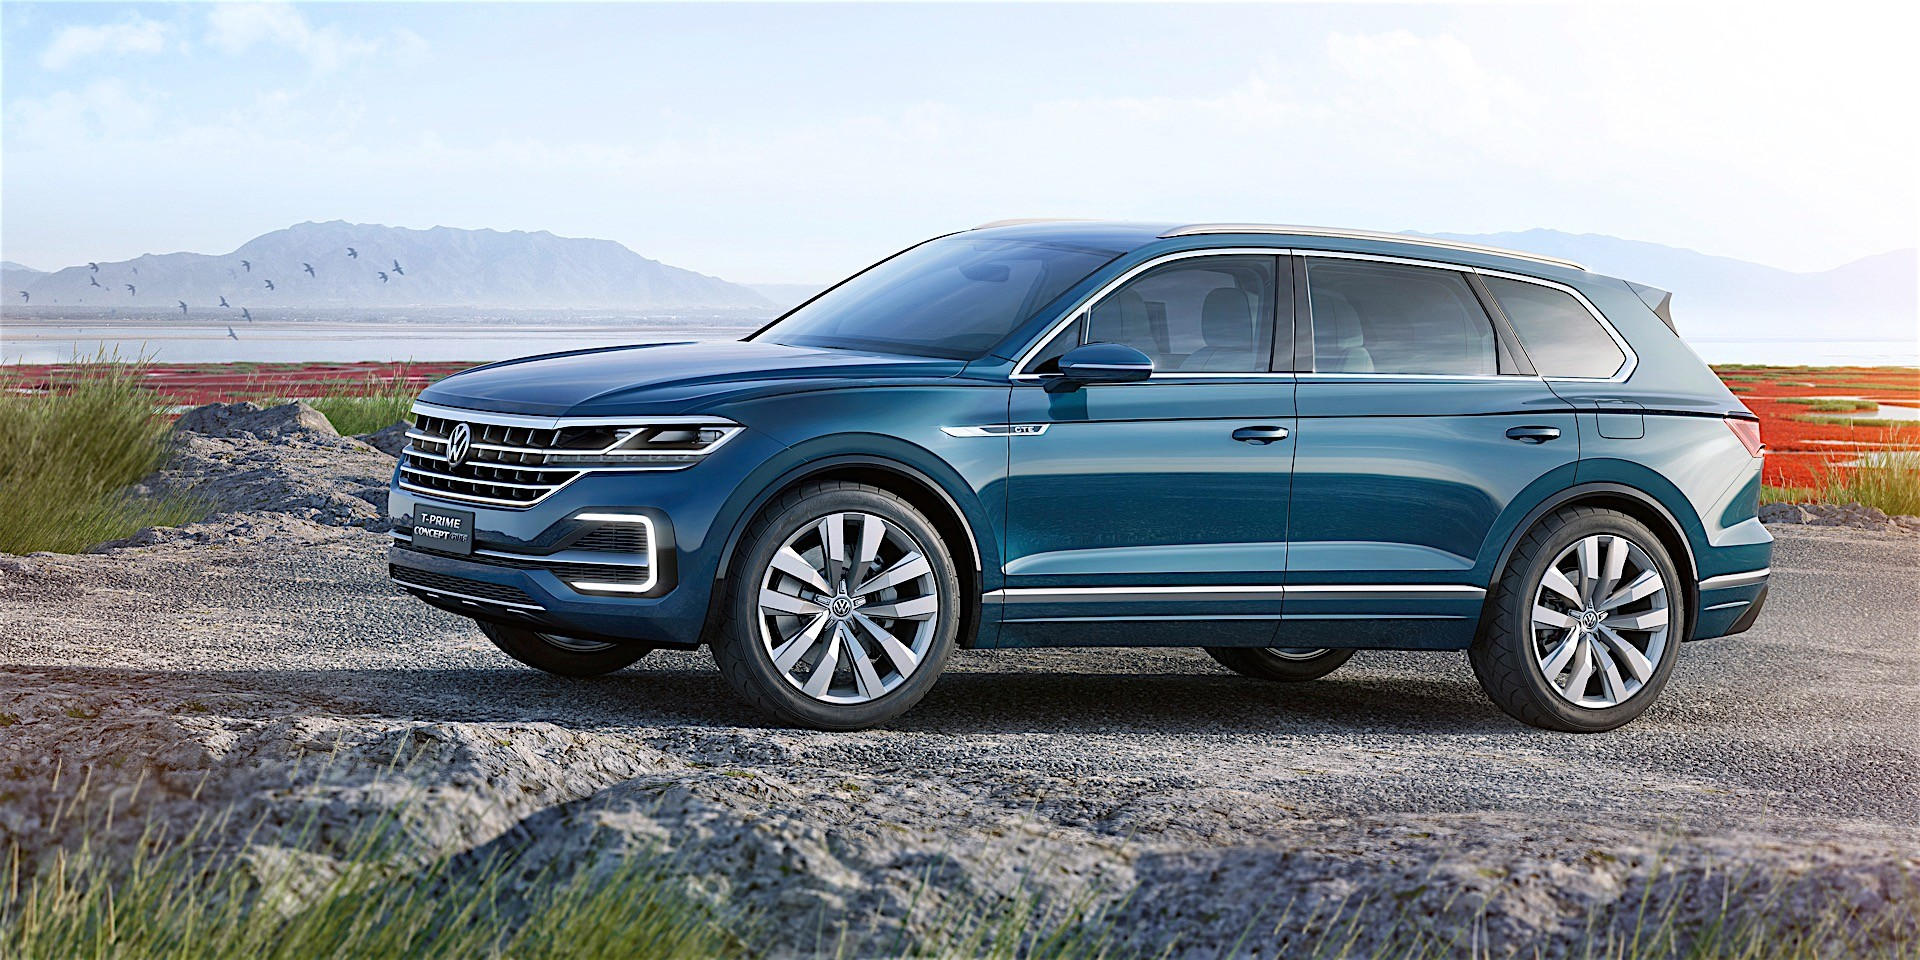 2018 Touareg | 2017 - 2018 Best Cars Reviews